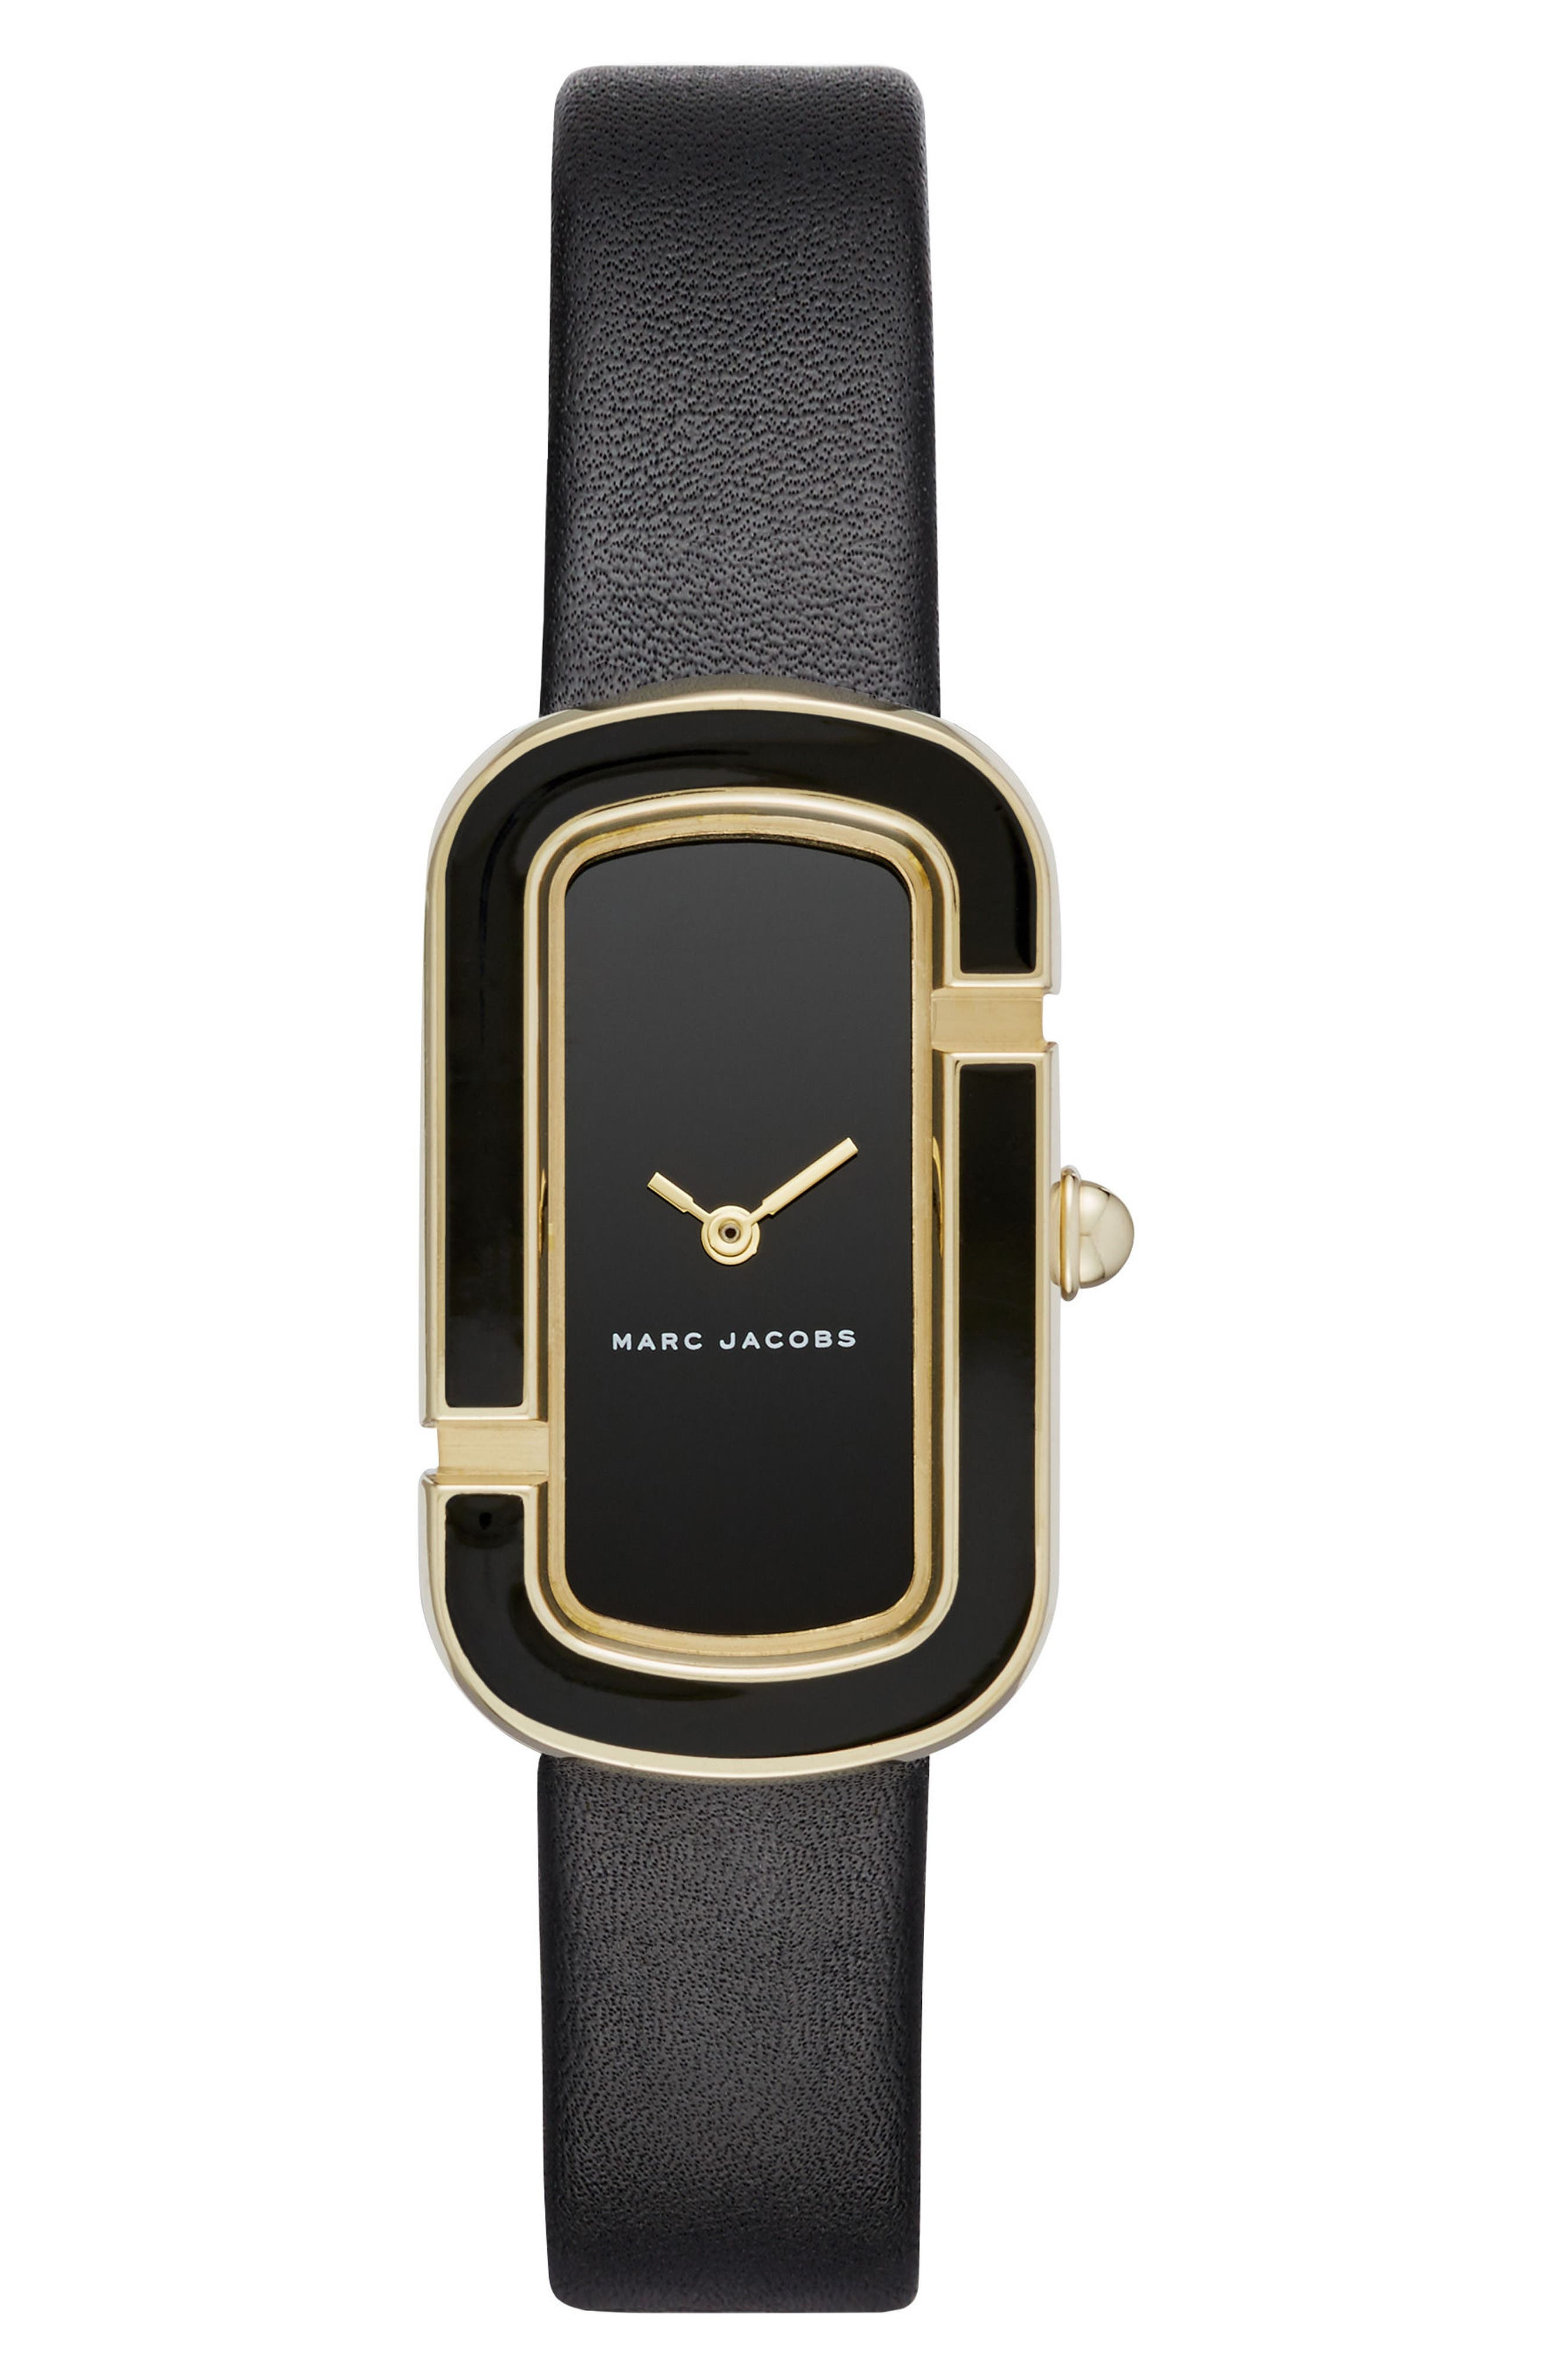 MARC JACOBS The Jacobs Leather Strap Watch, 39mm